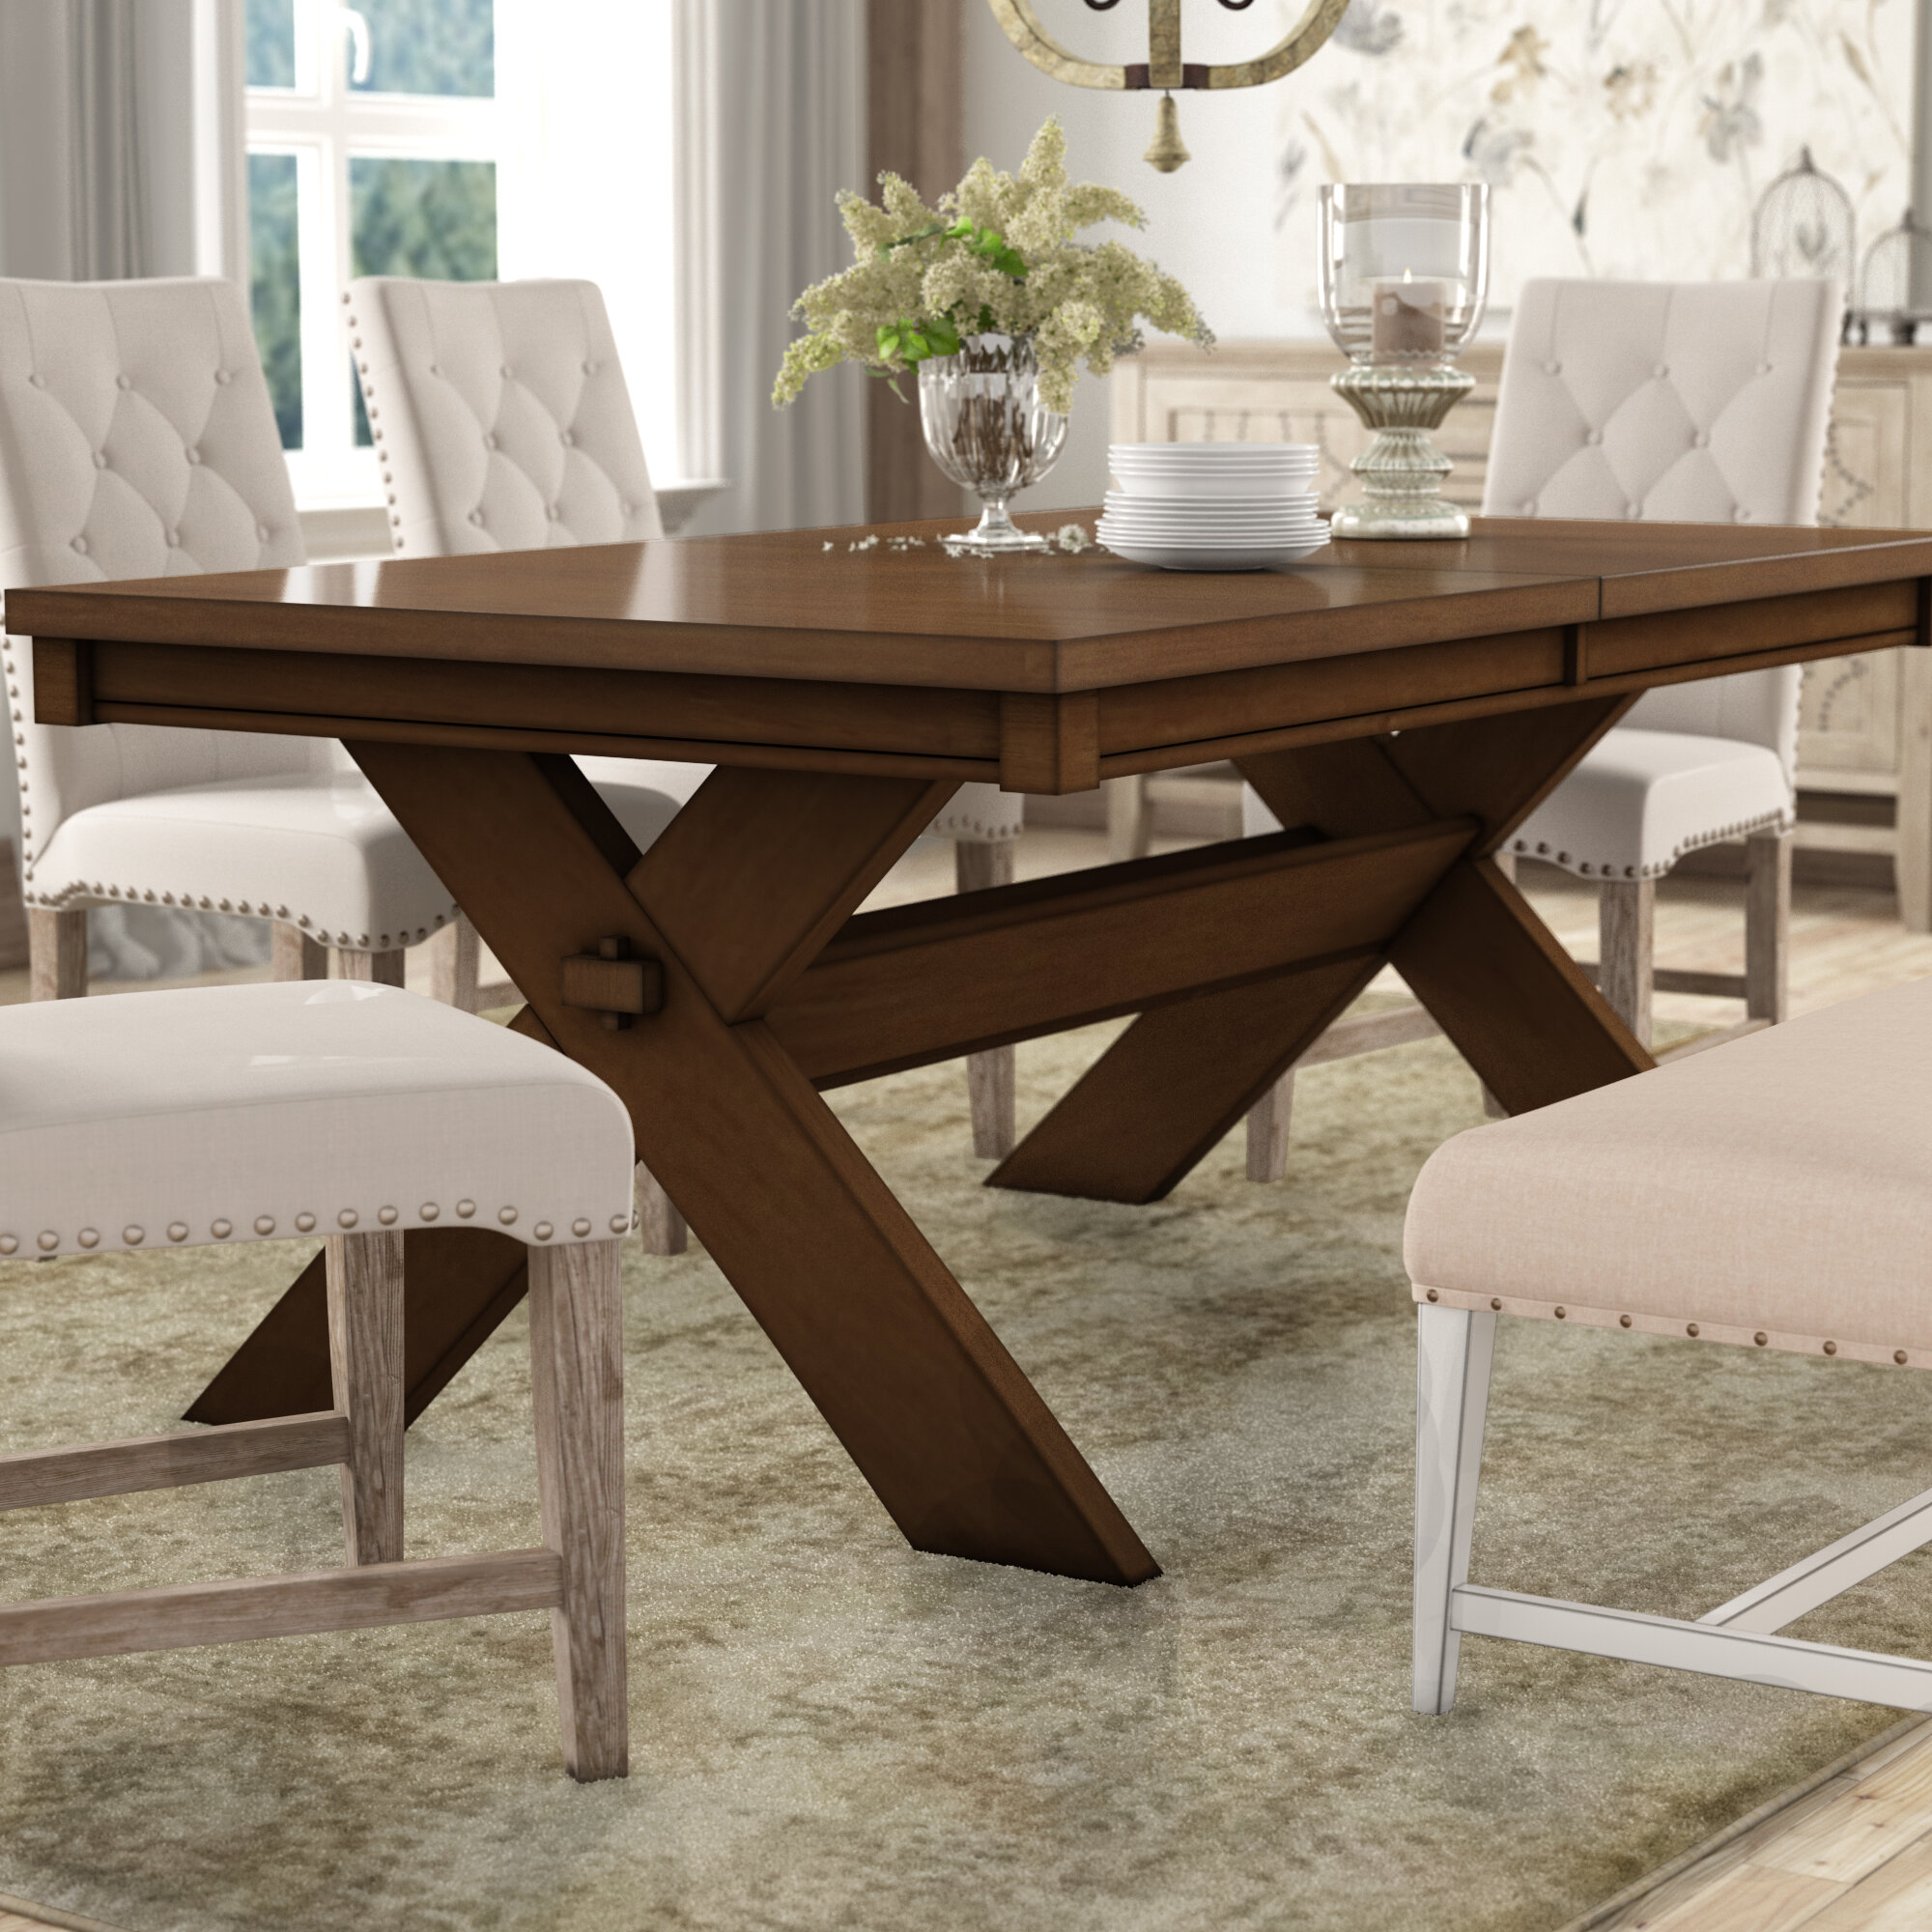 Laurel Foundry Modern Farmhouse Isabell Acacia Butterfly Leaf Extendable Solid Wood Dining Table Reviews Wayfair